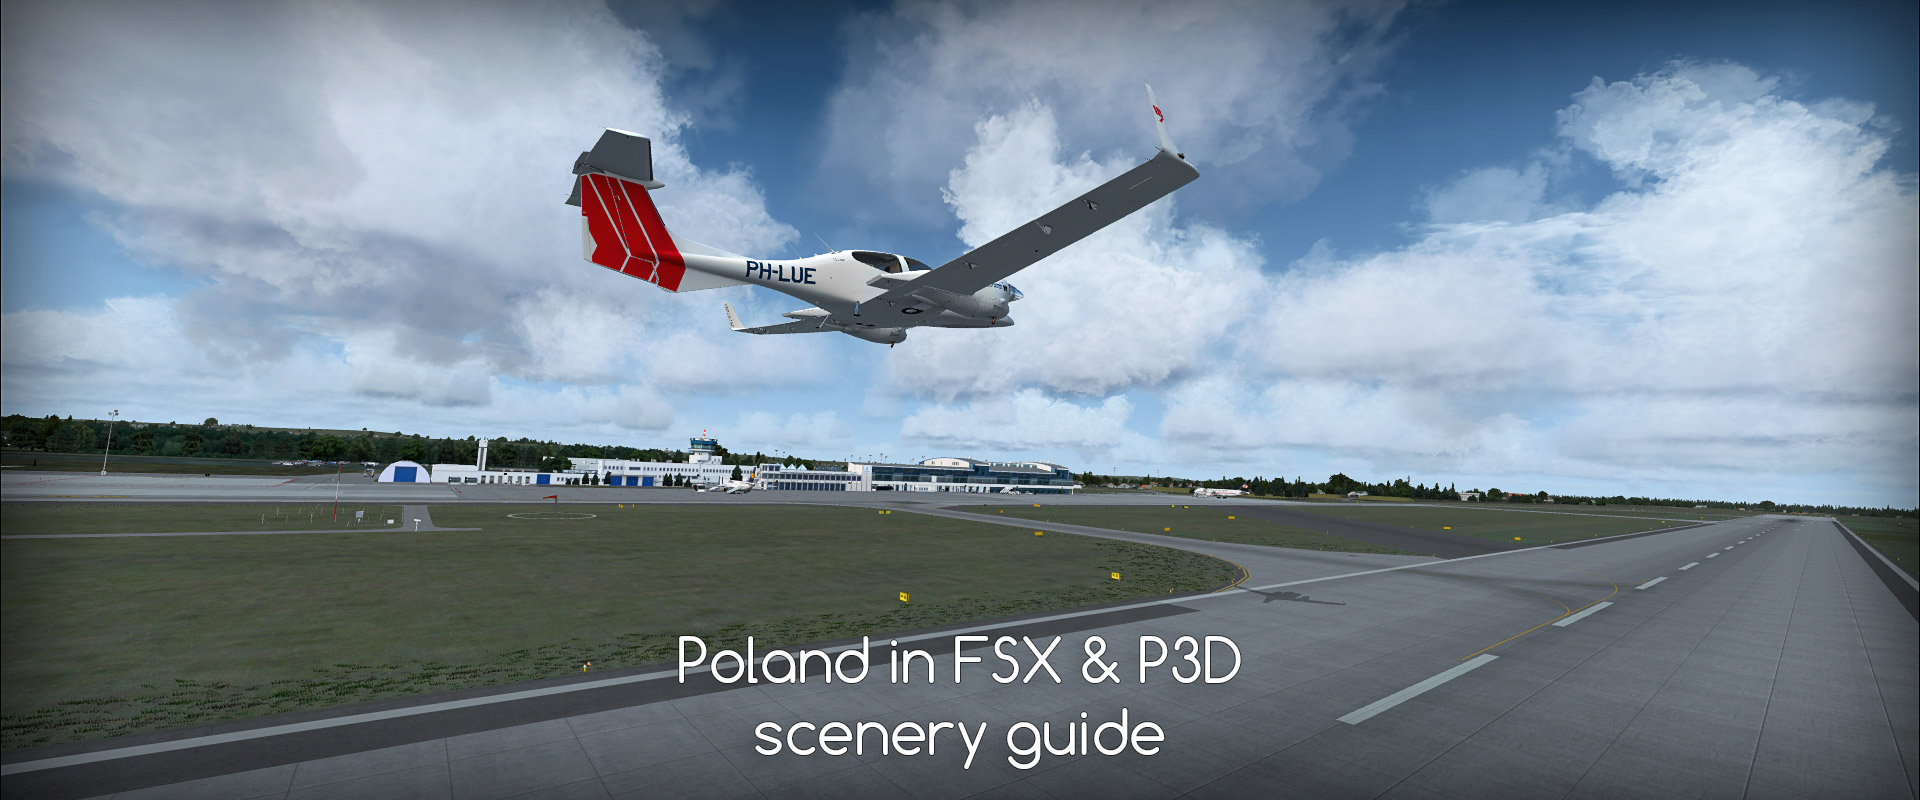 Poland in FSX & P3D - scenery guide